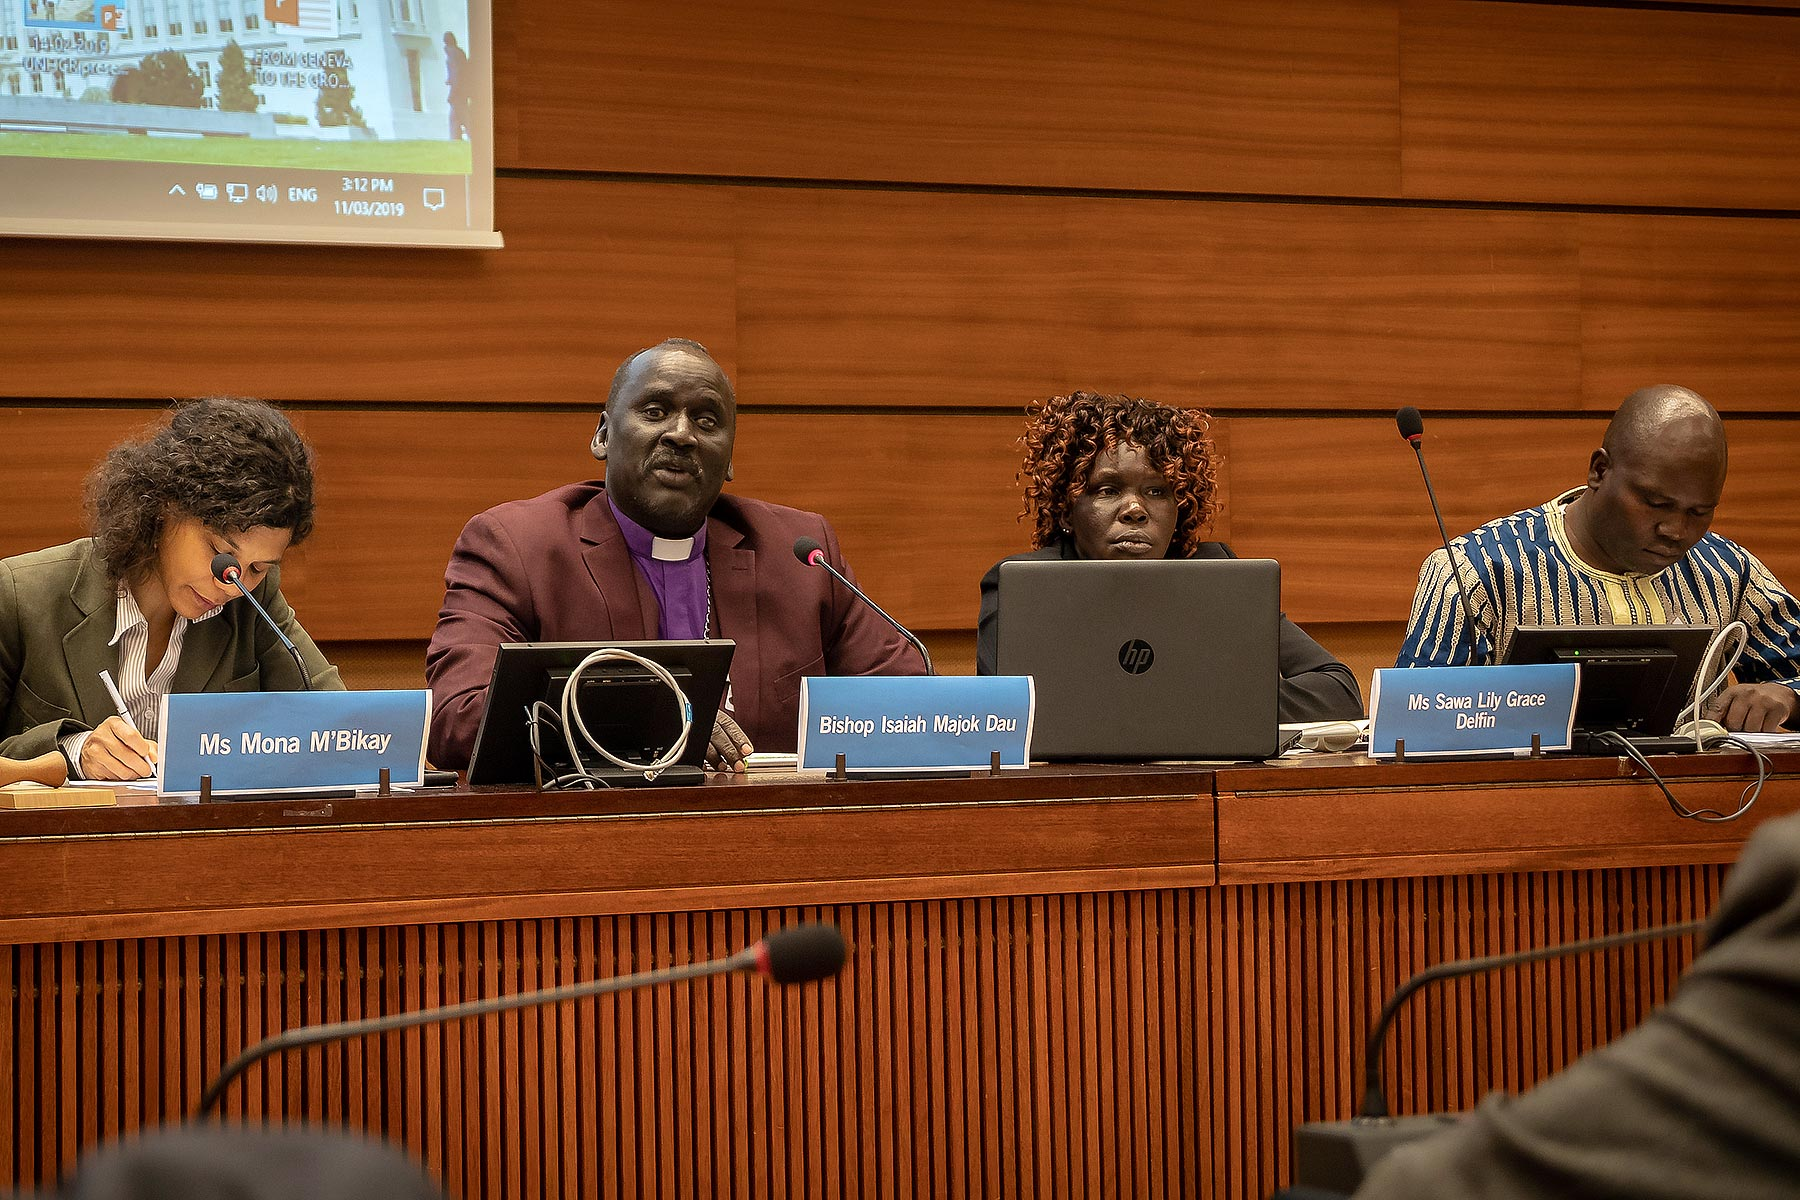 South Sudan civil society representative Ms Lilly Grace Delfin (second right) said there are critical gaps in addressing gender-based violence. Panelists at the human rights side event moderated by Ms Mona M'Bikay, Executive Director, UPR Info (left) included Bishop Isaiah Dau, South Sudan Council of Churches (second left) and Mr Jame David Kolok Joshua (far right), South Sudan Civil Society Coalition on the UPR. LWF/A. Danielsson